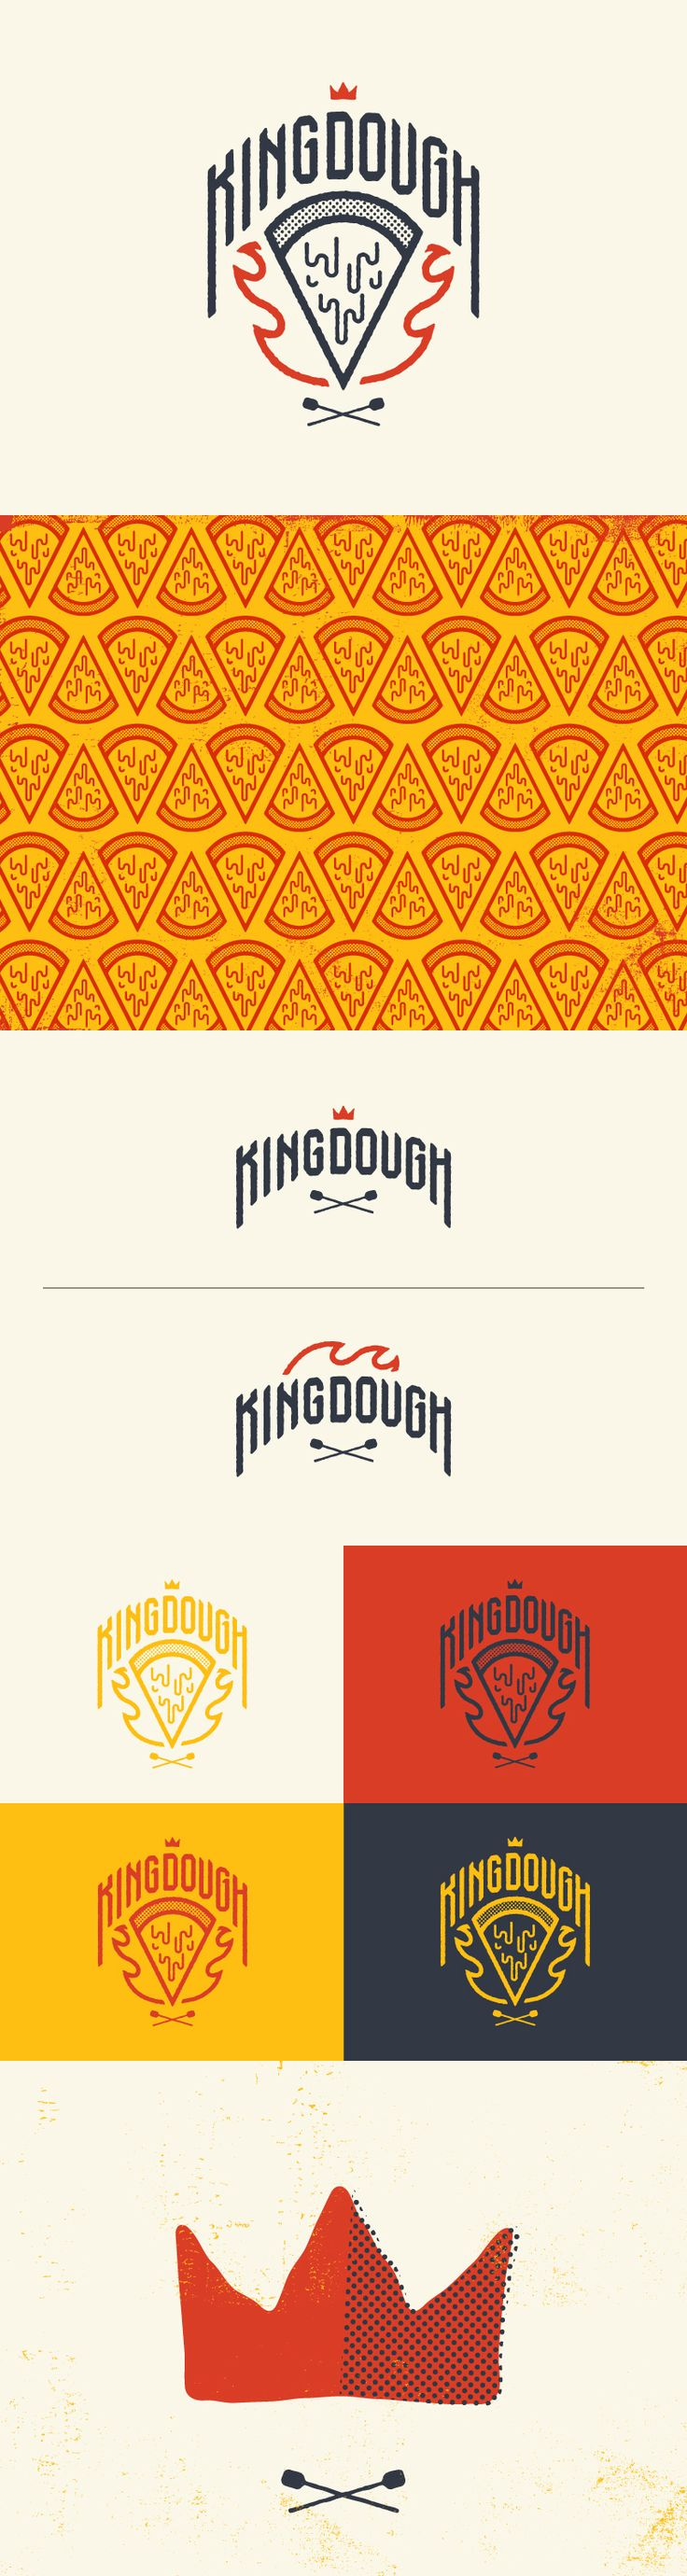 KingDough, first I love the play on words that this brand has. Plus have the very screen print look gives this logo a sense of organic feel that a pizza company needs.